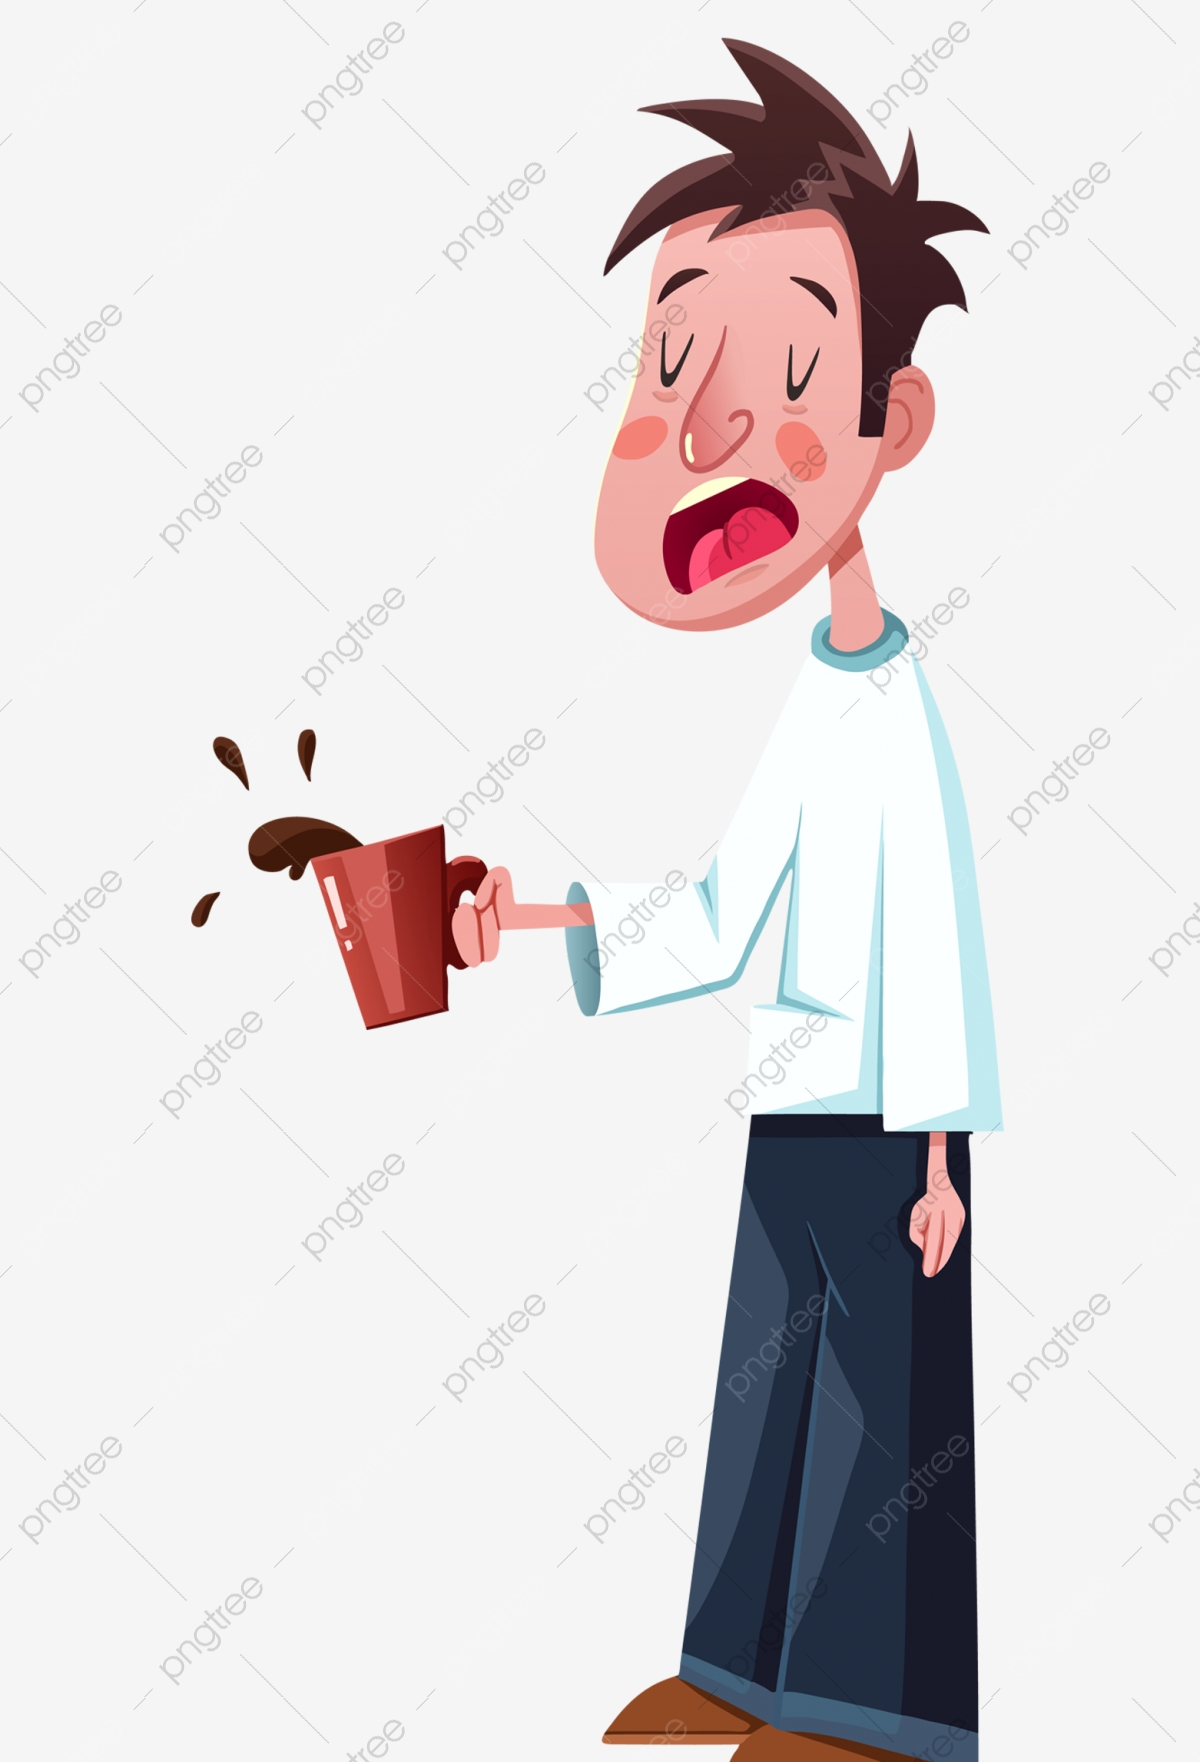 Yawning Boy Coffee Yawn Boy Png Transparent Clipart Image And Psd File For Free Download